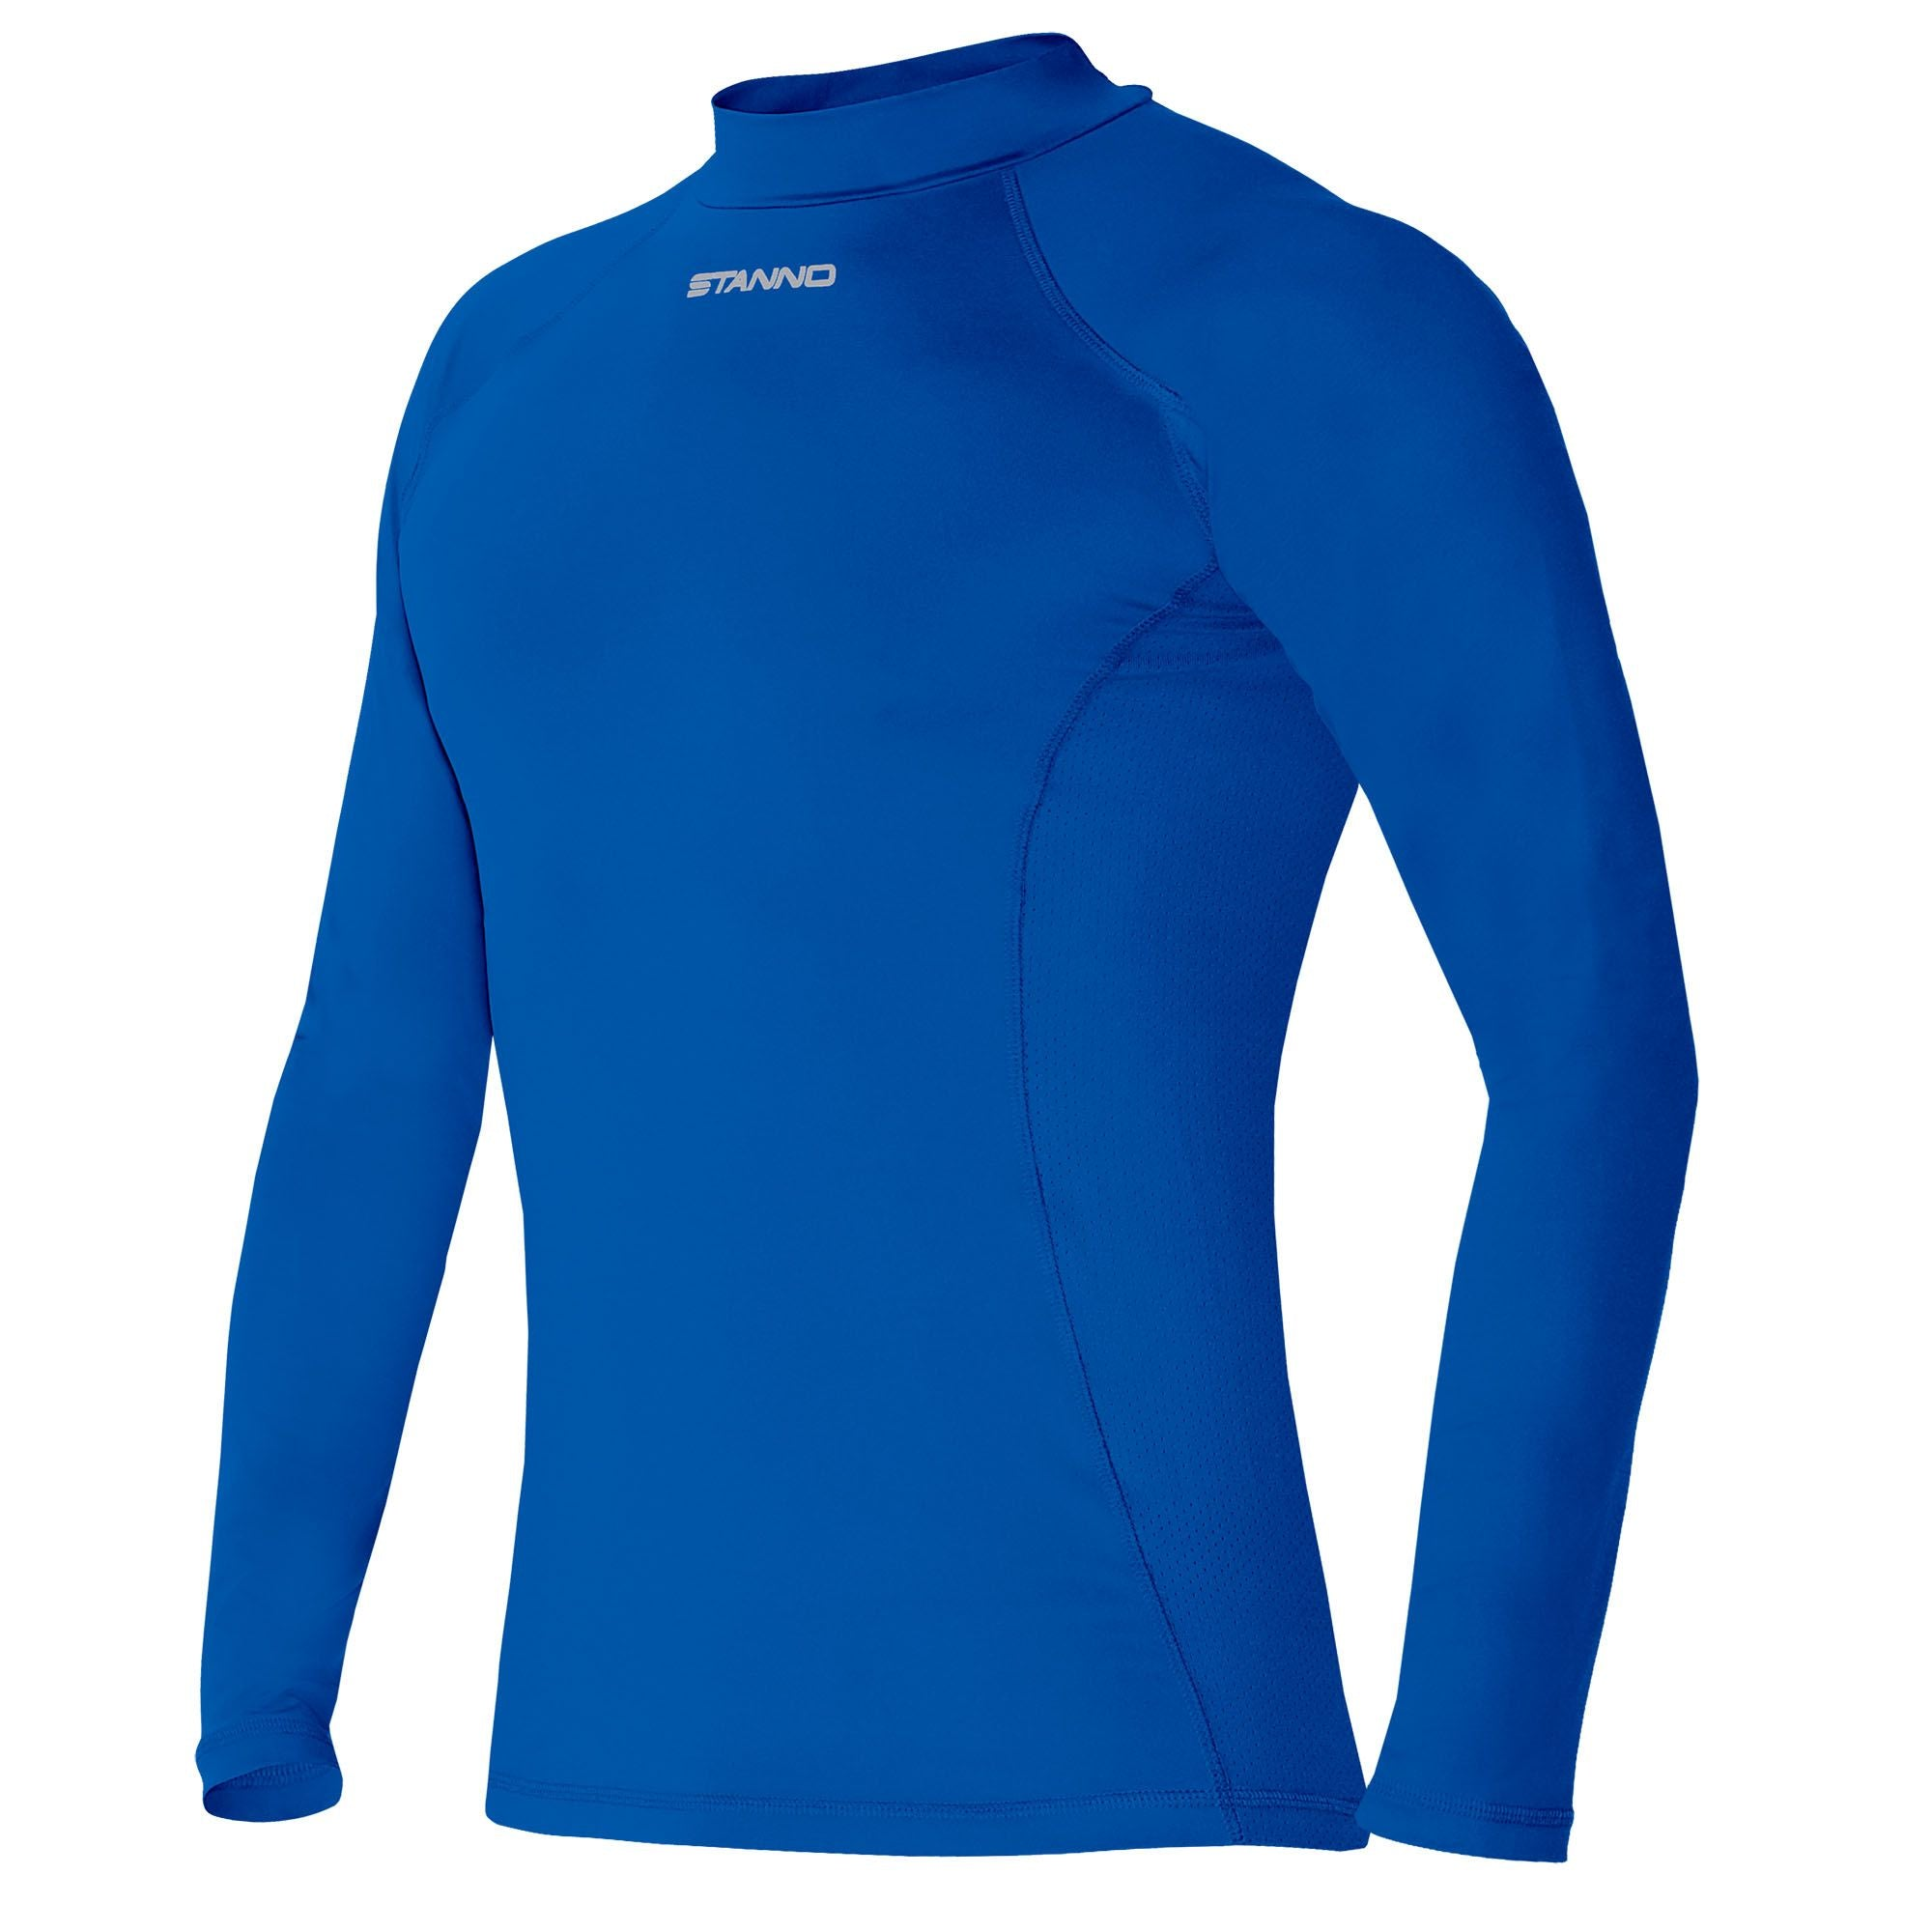 Dexter Sports YFC - Stanno Pro Base Layer - Royal